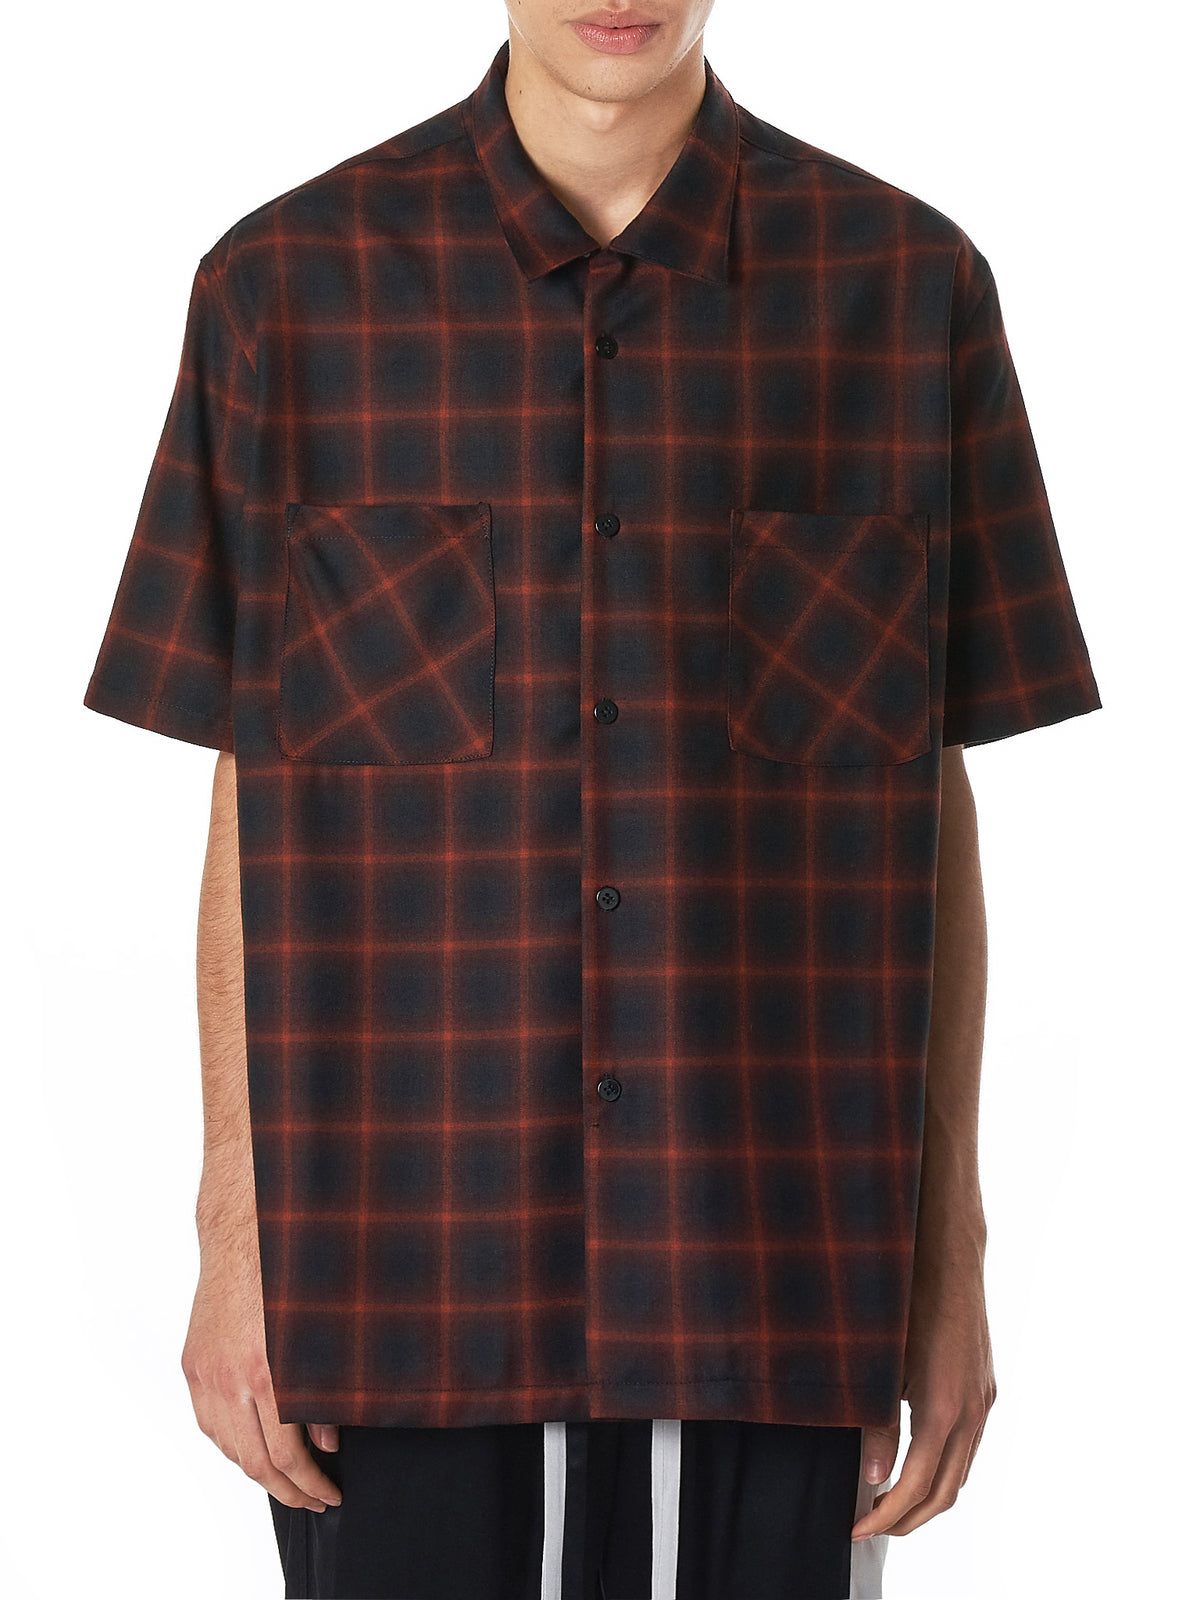 Nahmias Plaid Shirt - Hlorenzo Front